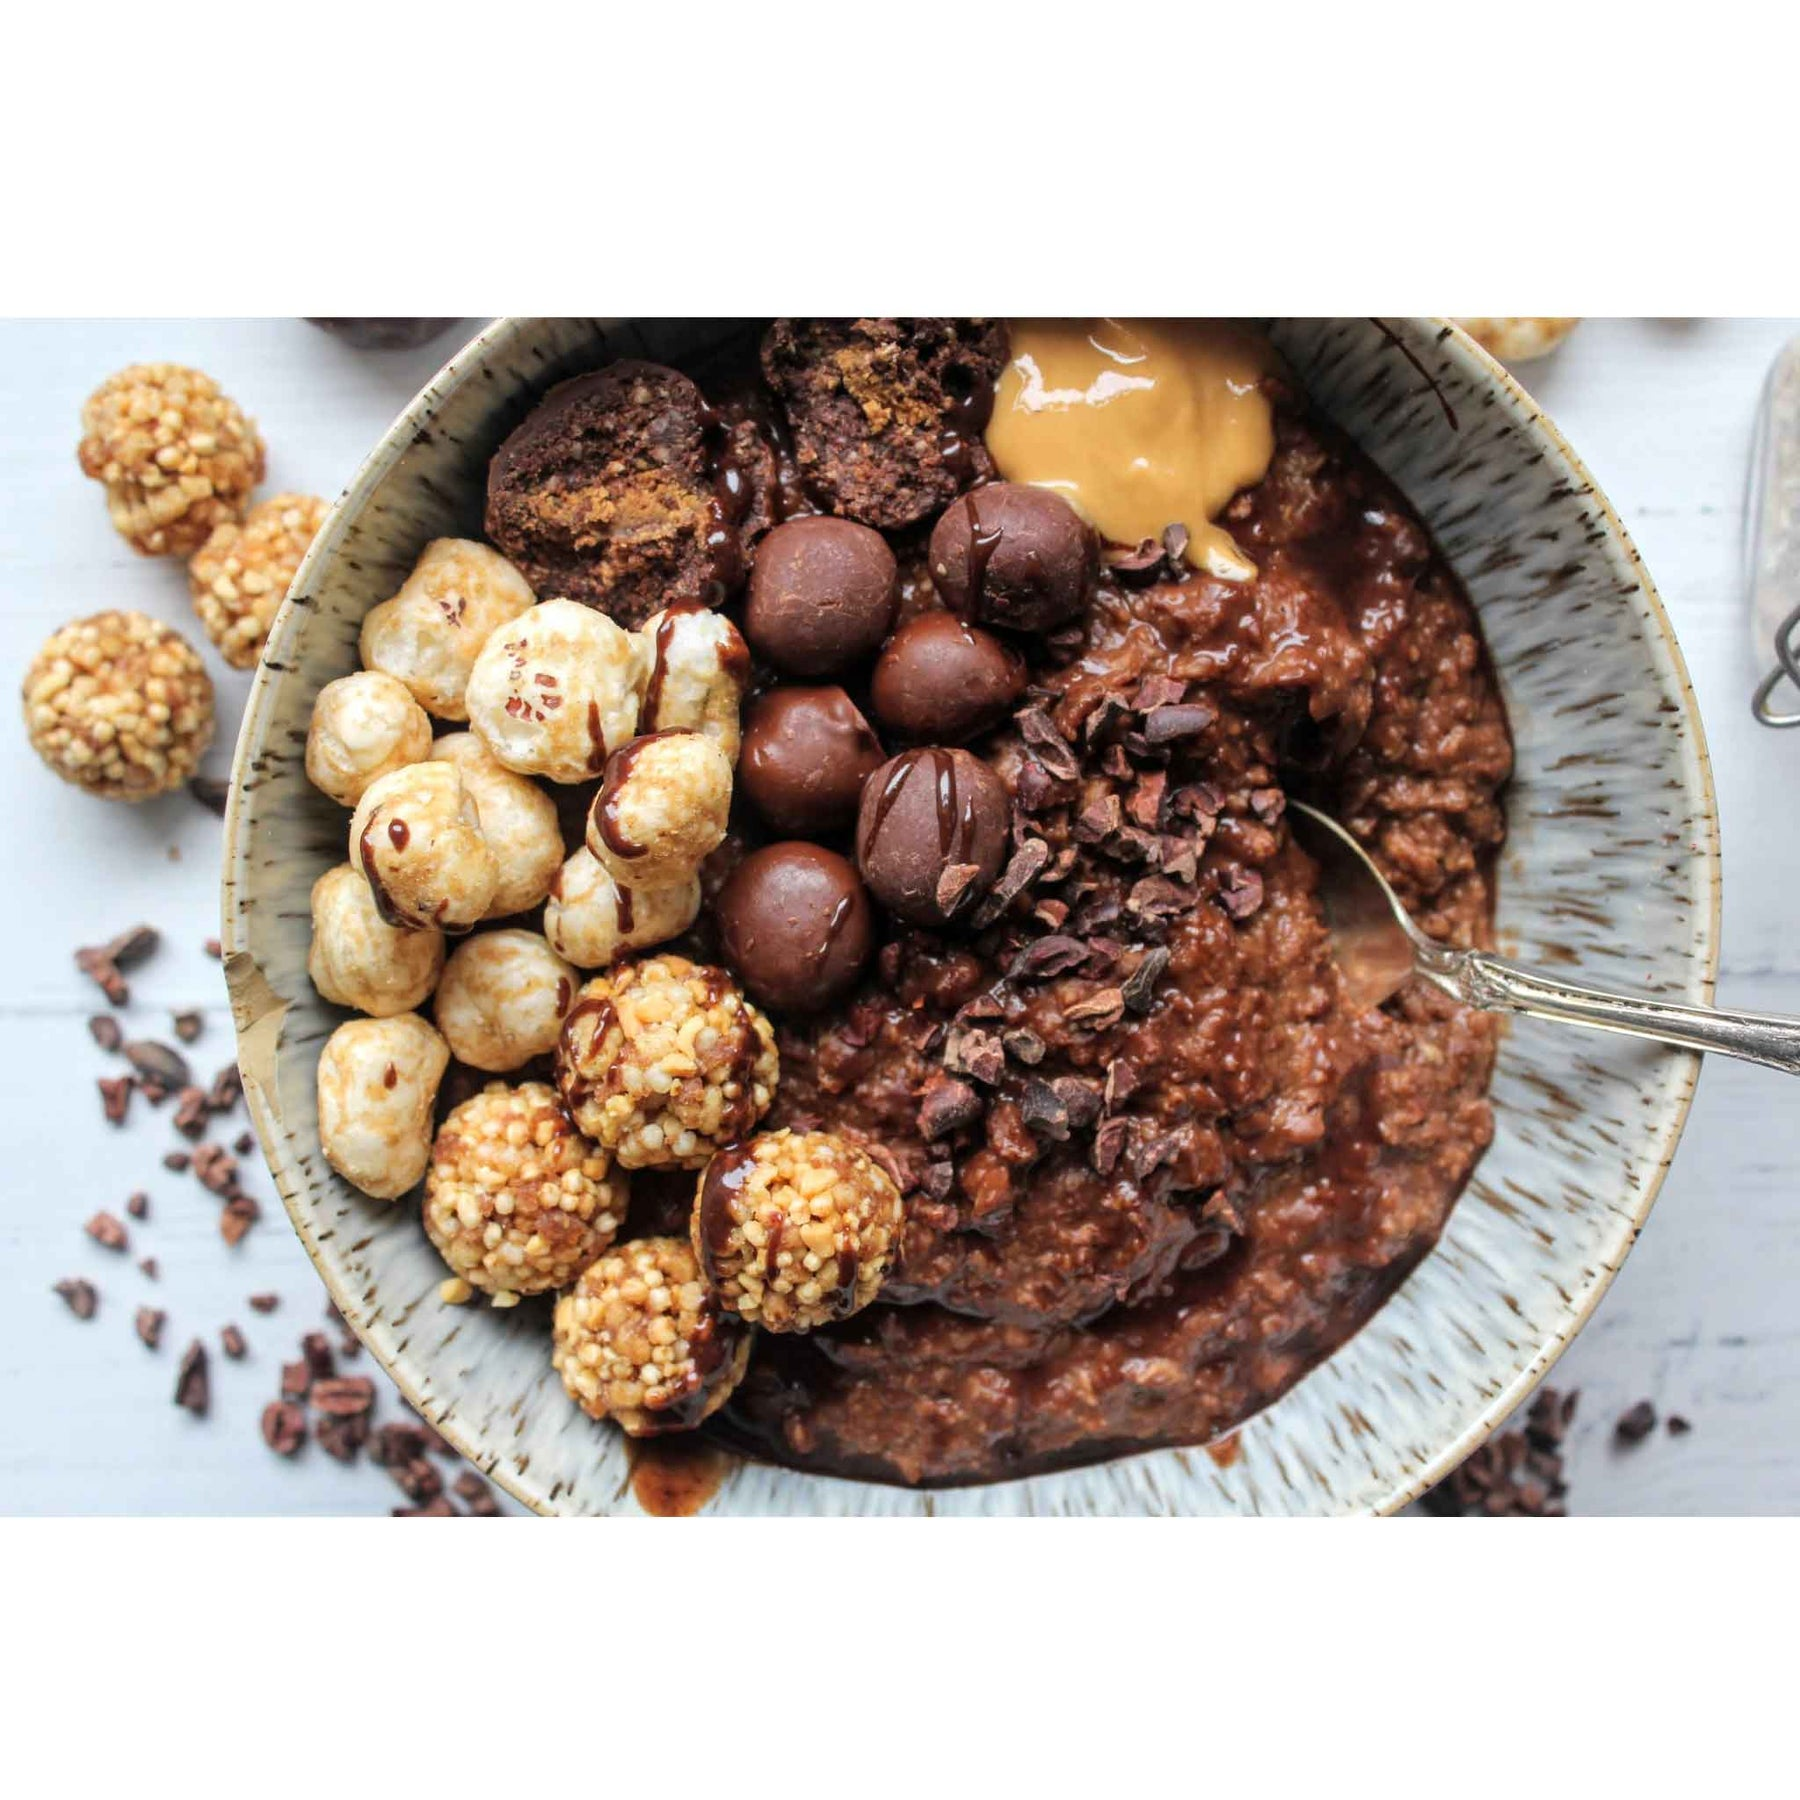 Recipes | Loaded Chocolate Porridge Bowl by Pamela Higgins